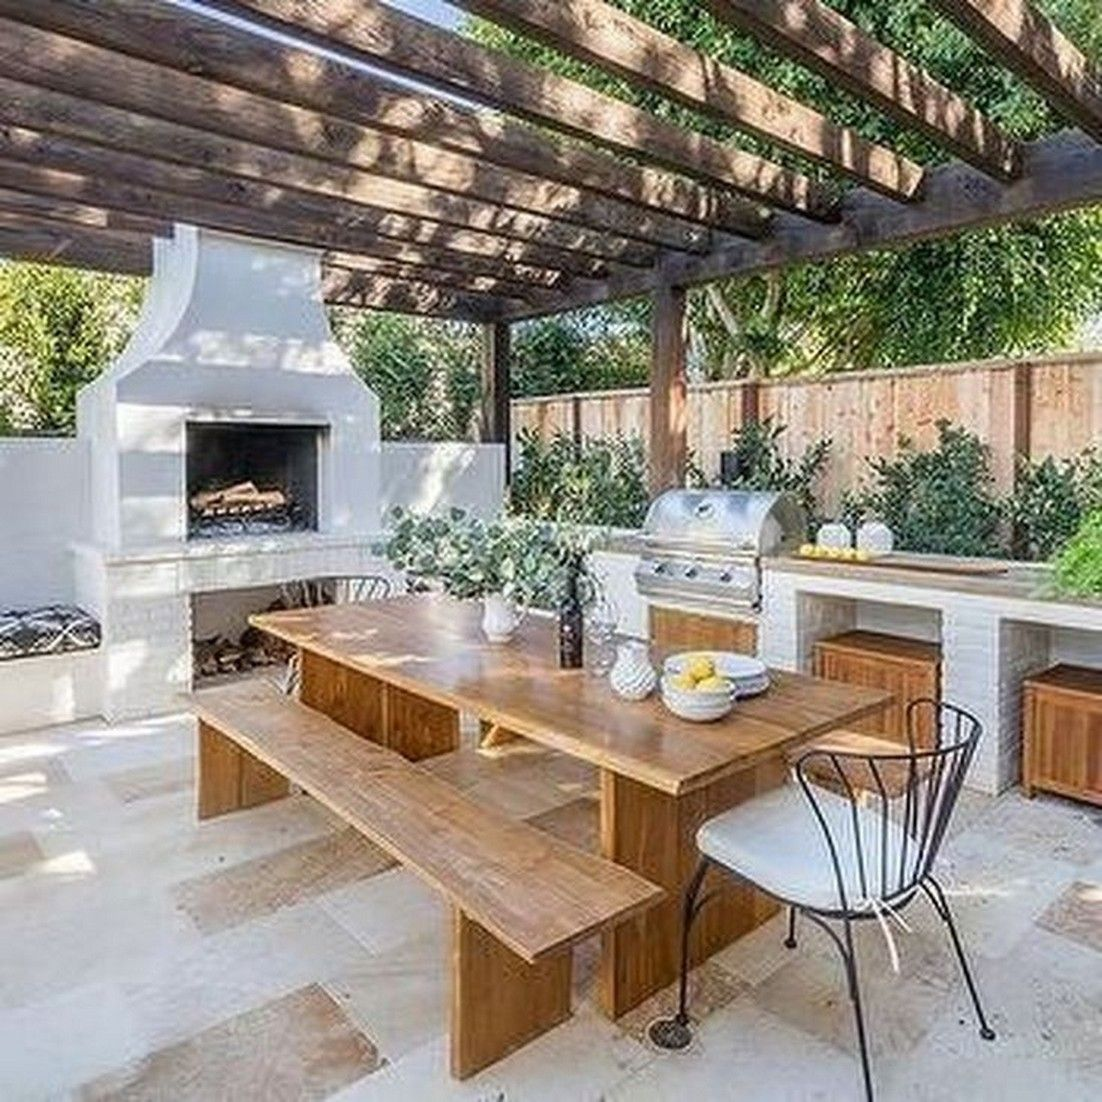 65 Easy And Cool Roof Design Ideas With A Gazebo 29 In 2020 Outdoor Kitchen Decor Modern Outdoor Kitchen Outdoor Kitchen Design